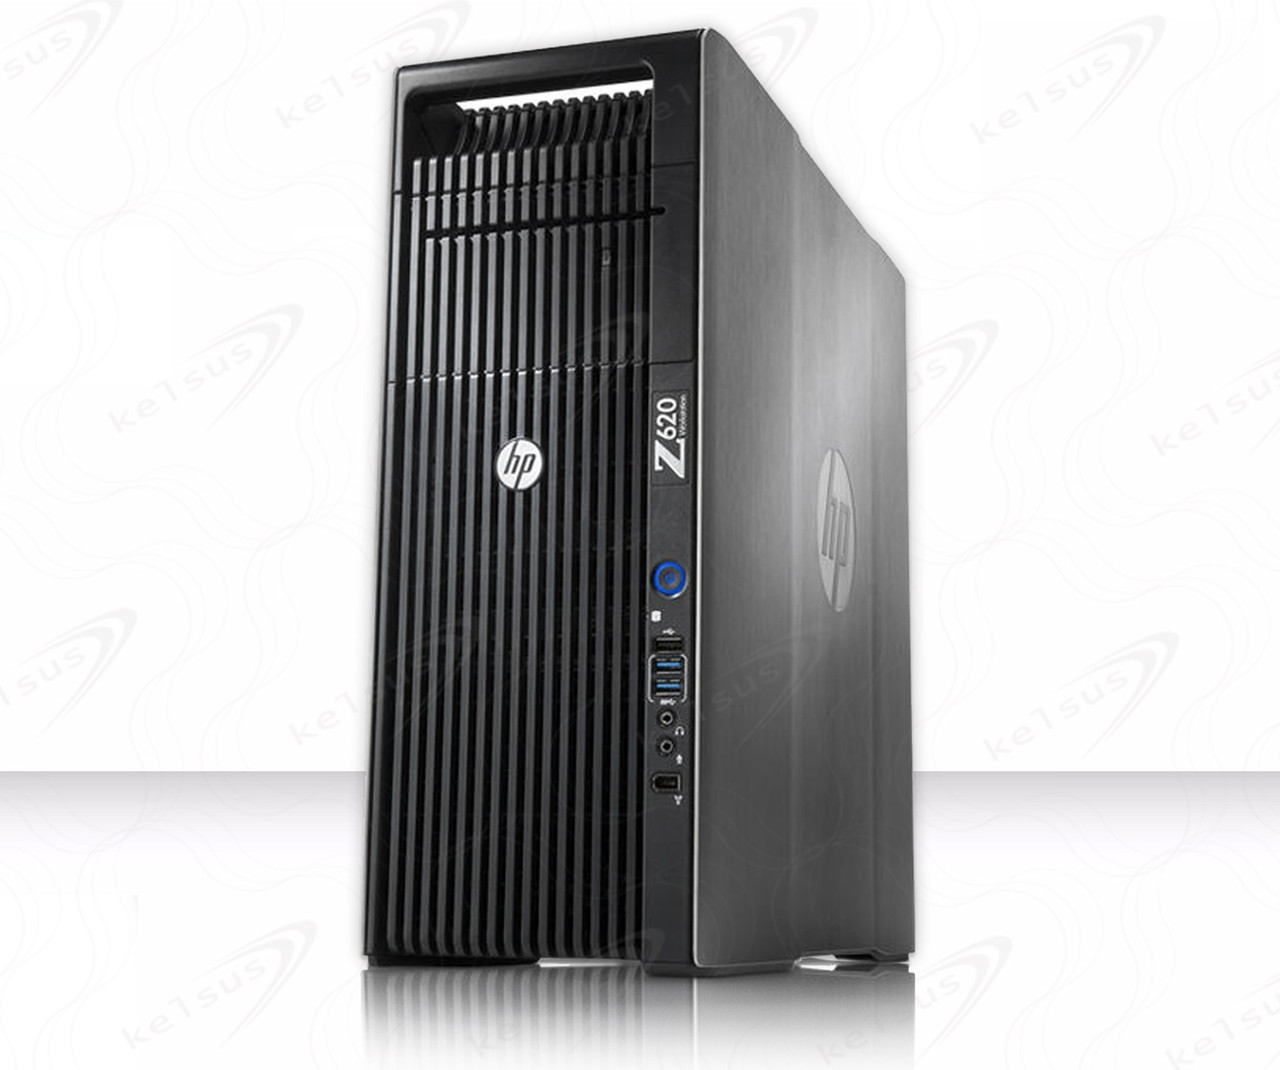 HP Z620 CAD SolidWorks Rendering AutoDesk AutoCad  Workstation PC 3D Studio Max Corona render Photoshop PC